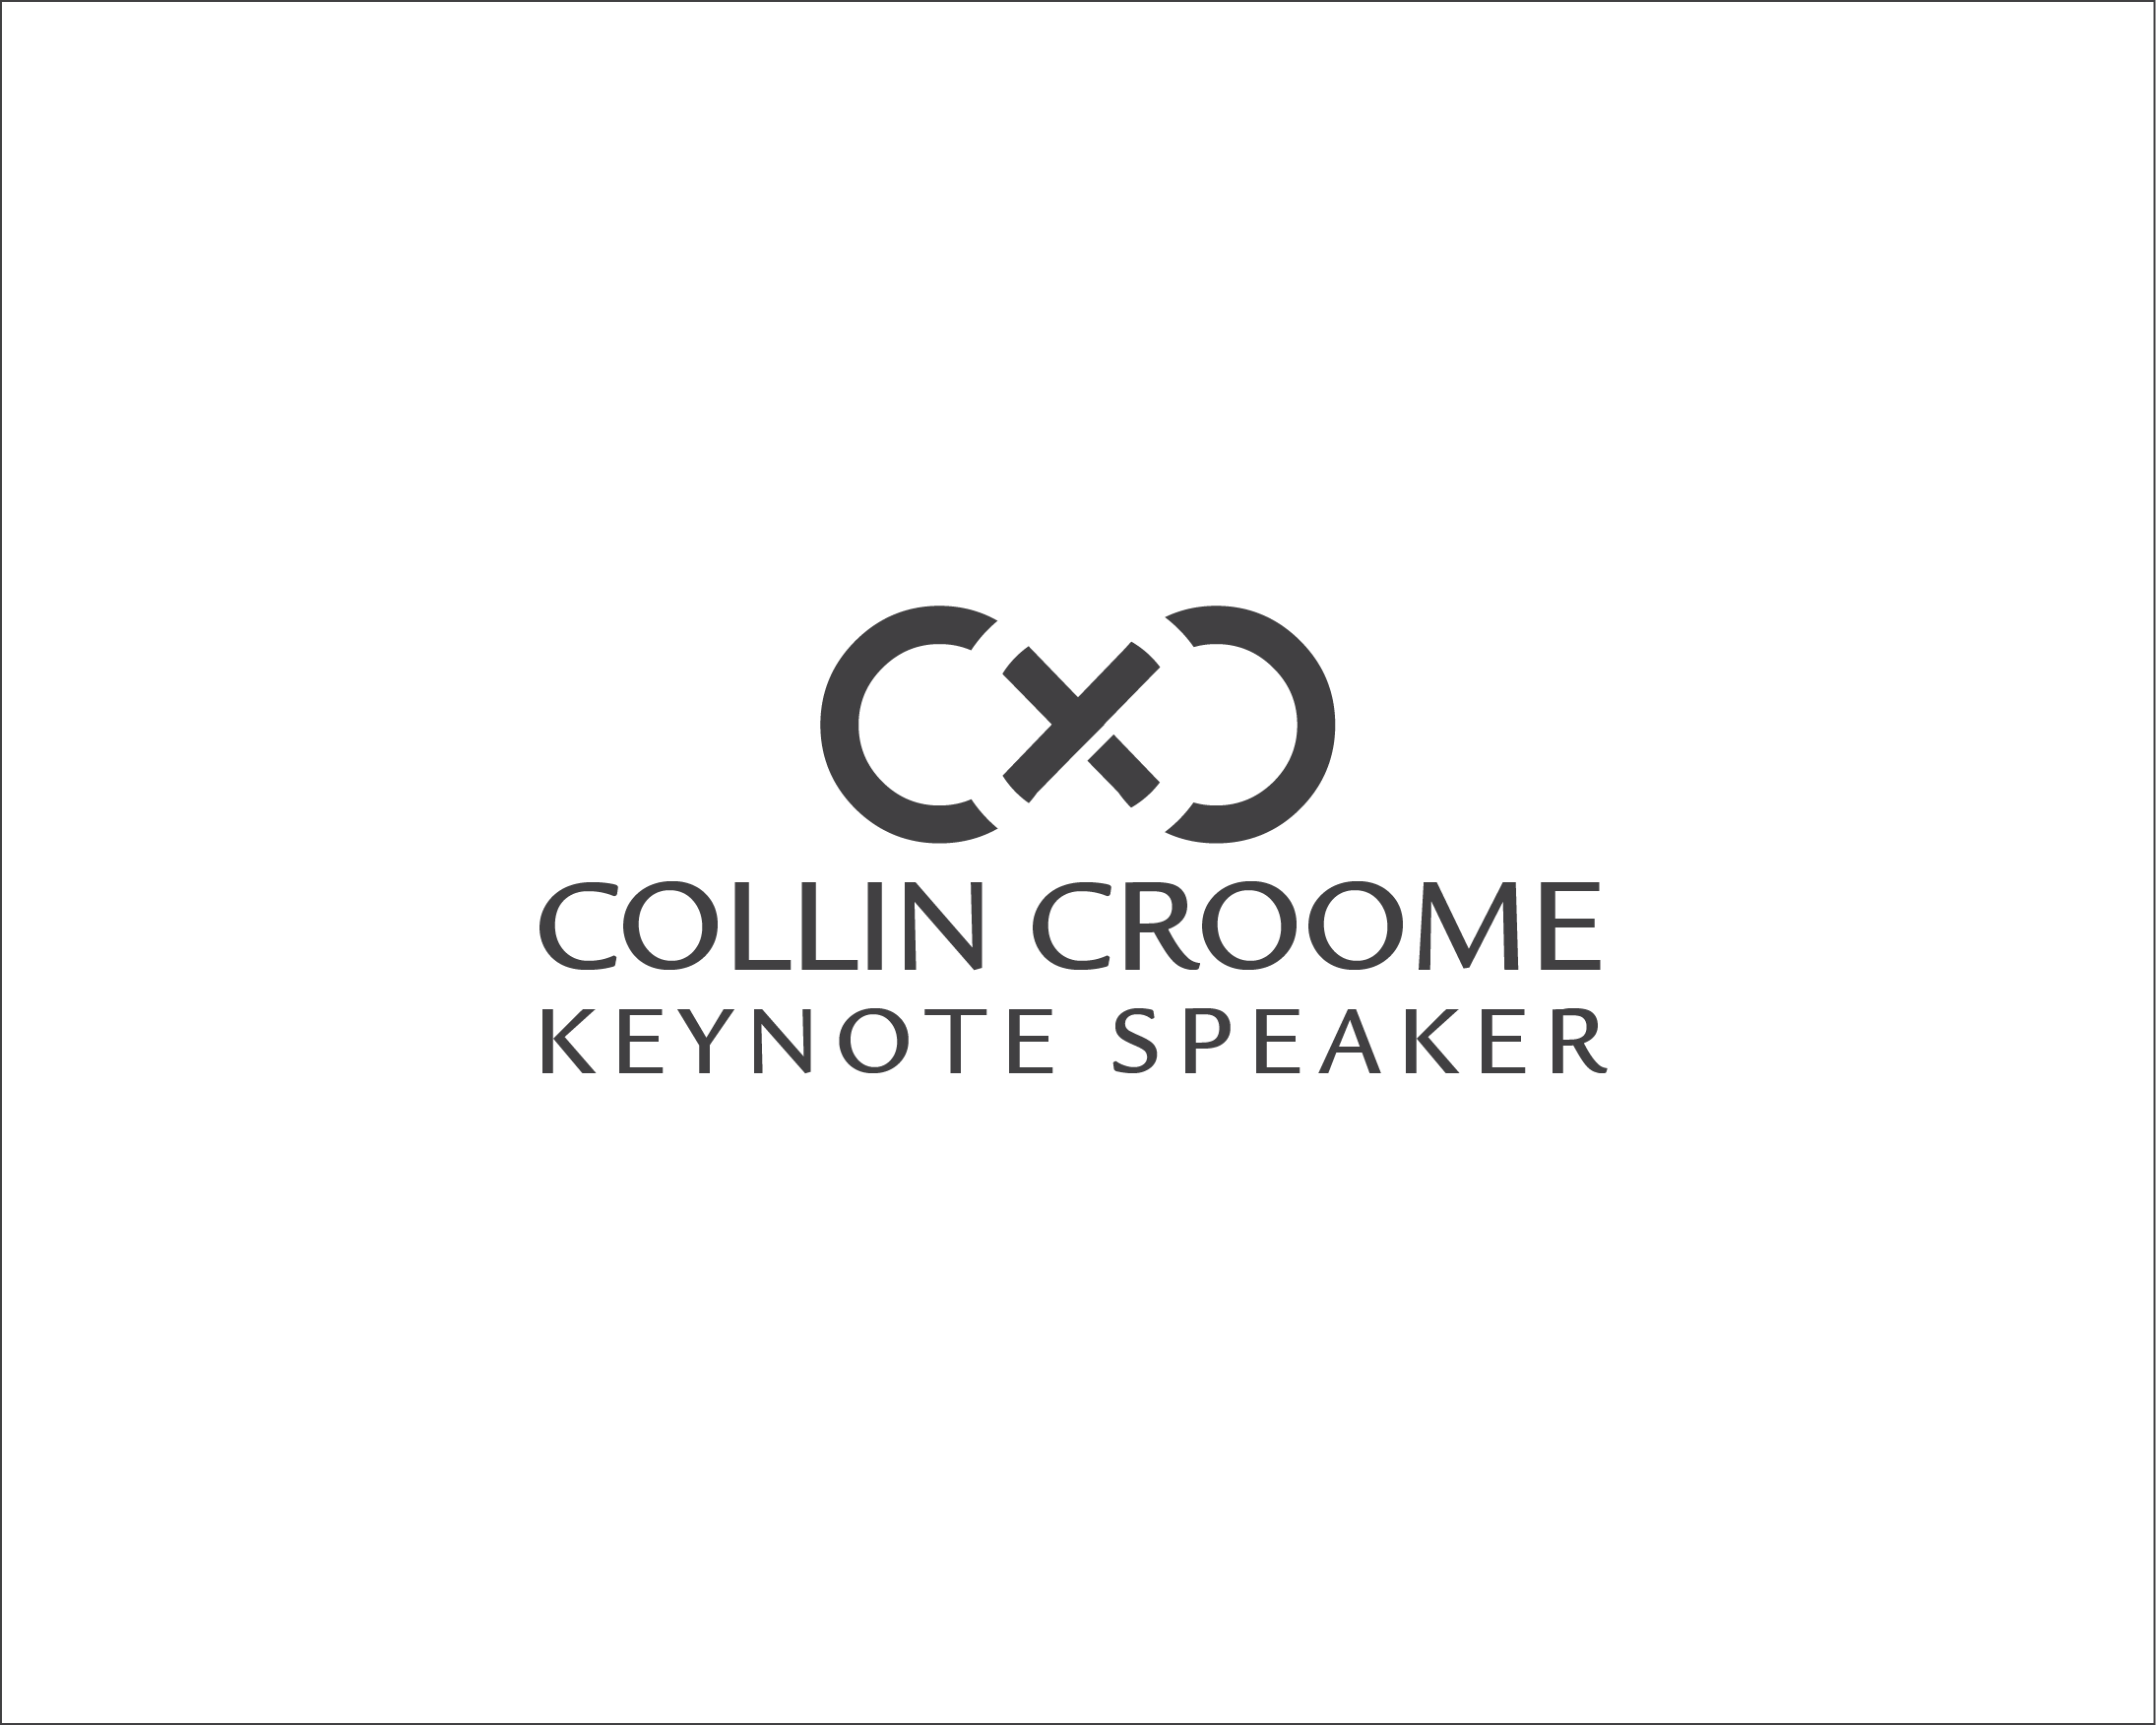 Logo Design by iwyn - Entry No. 207 in the Logo Design Contest Modern Logo Design for Collin Croome.